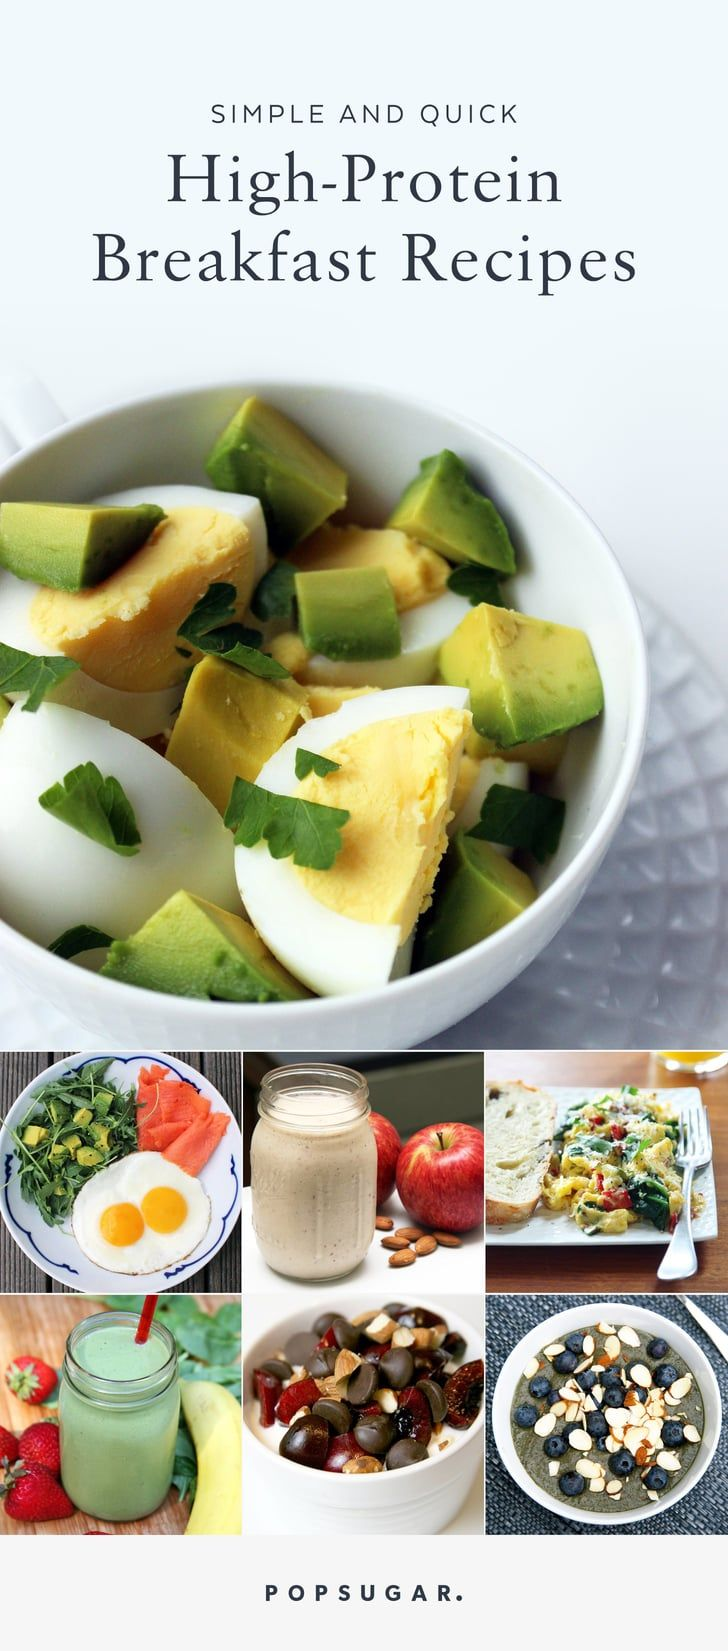 21 High-Protein Breakfasts That Barely Take Any Time to Prepare images